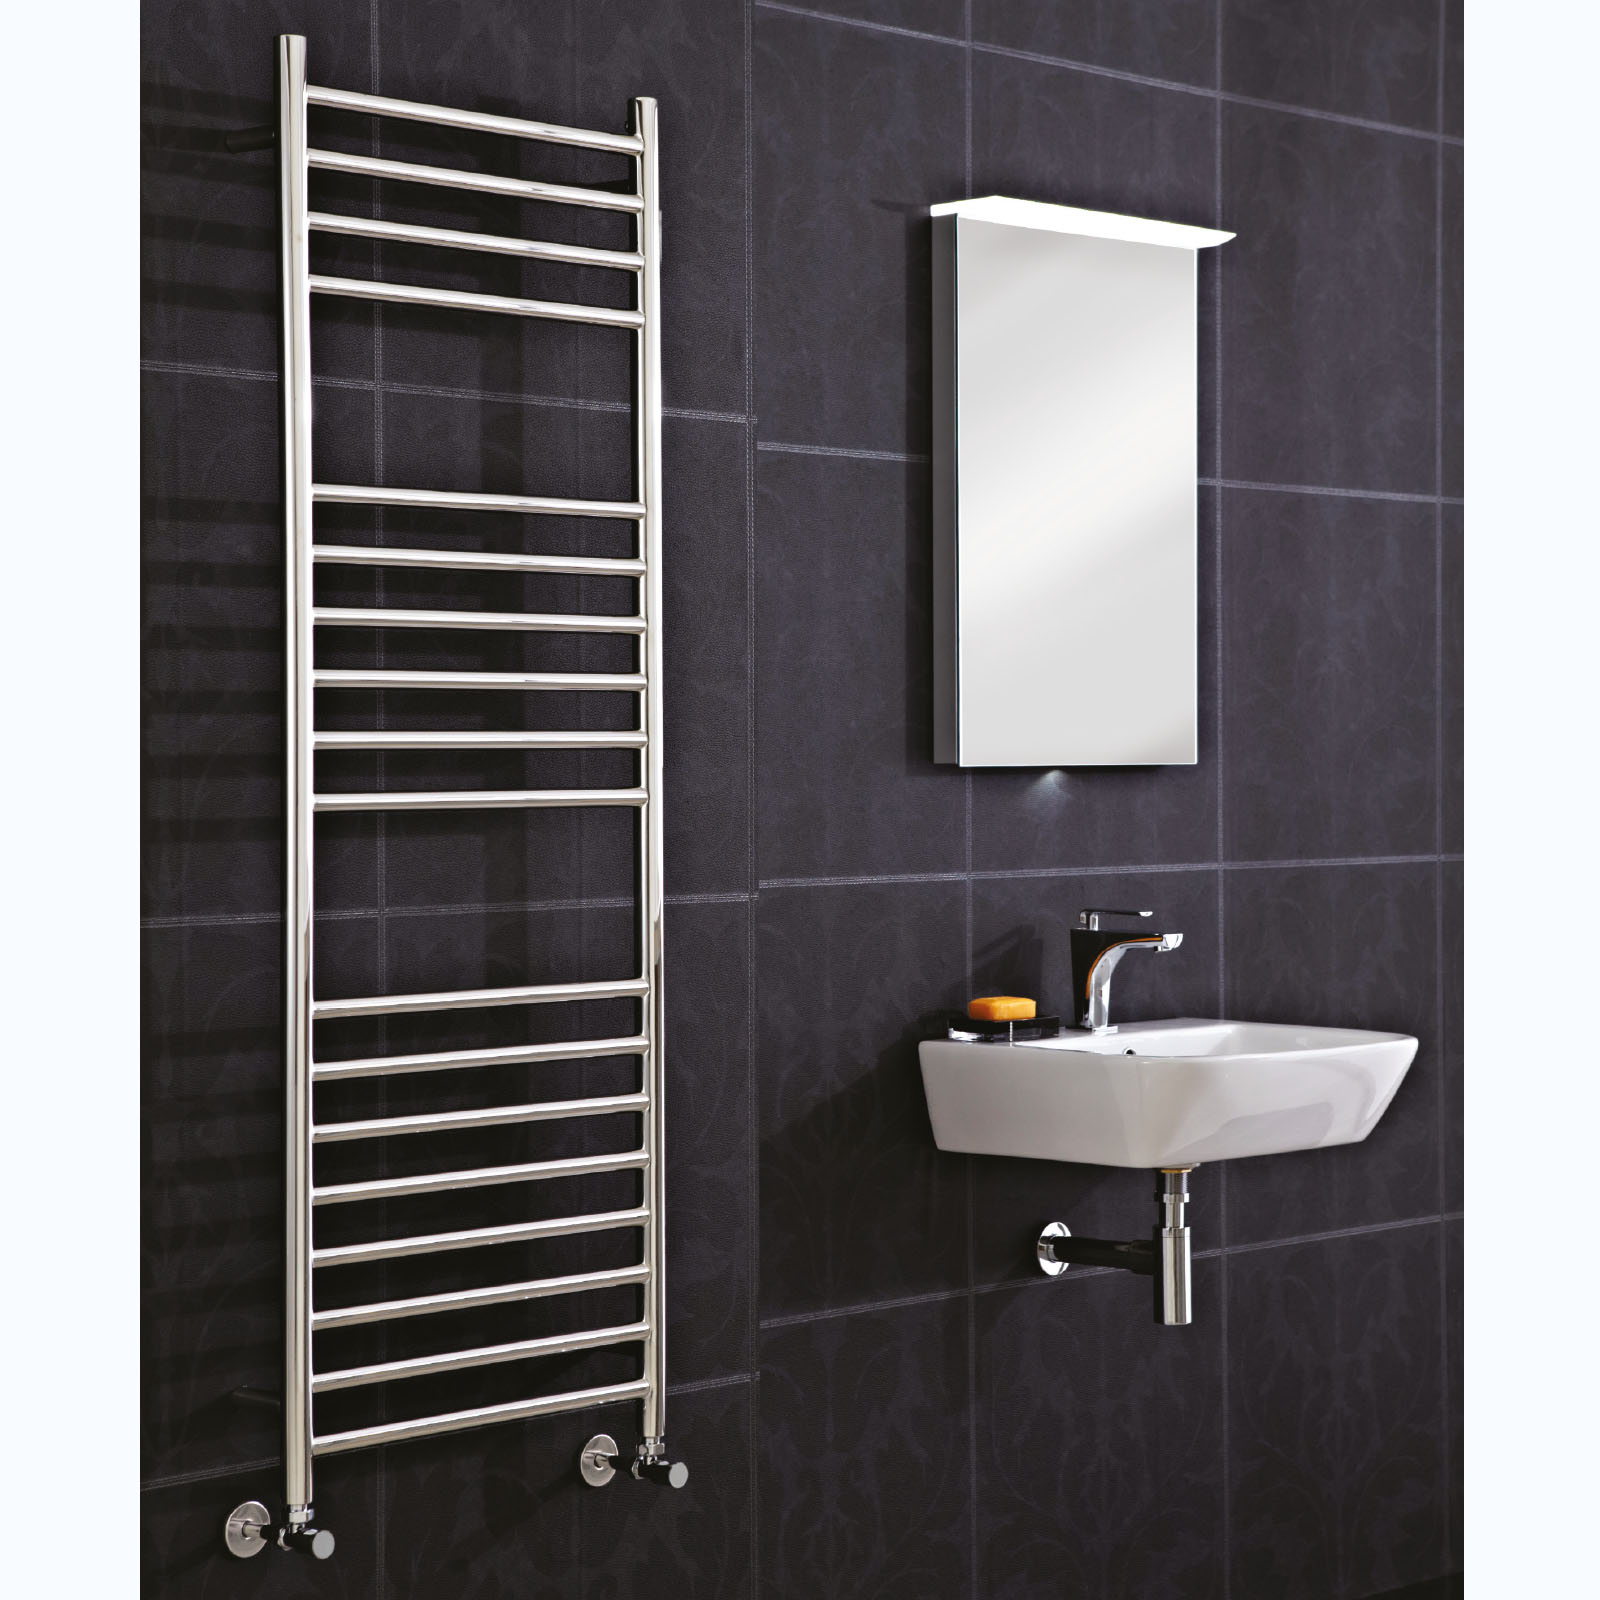 Small heated towel rails for bathrooms - Phoenix Athena Stainless Steel Towel Rail